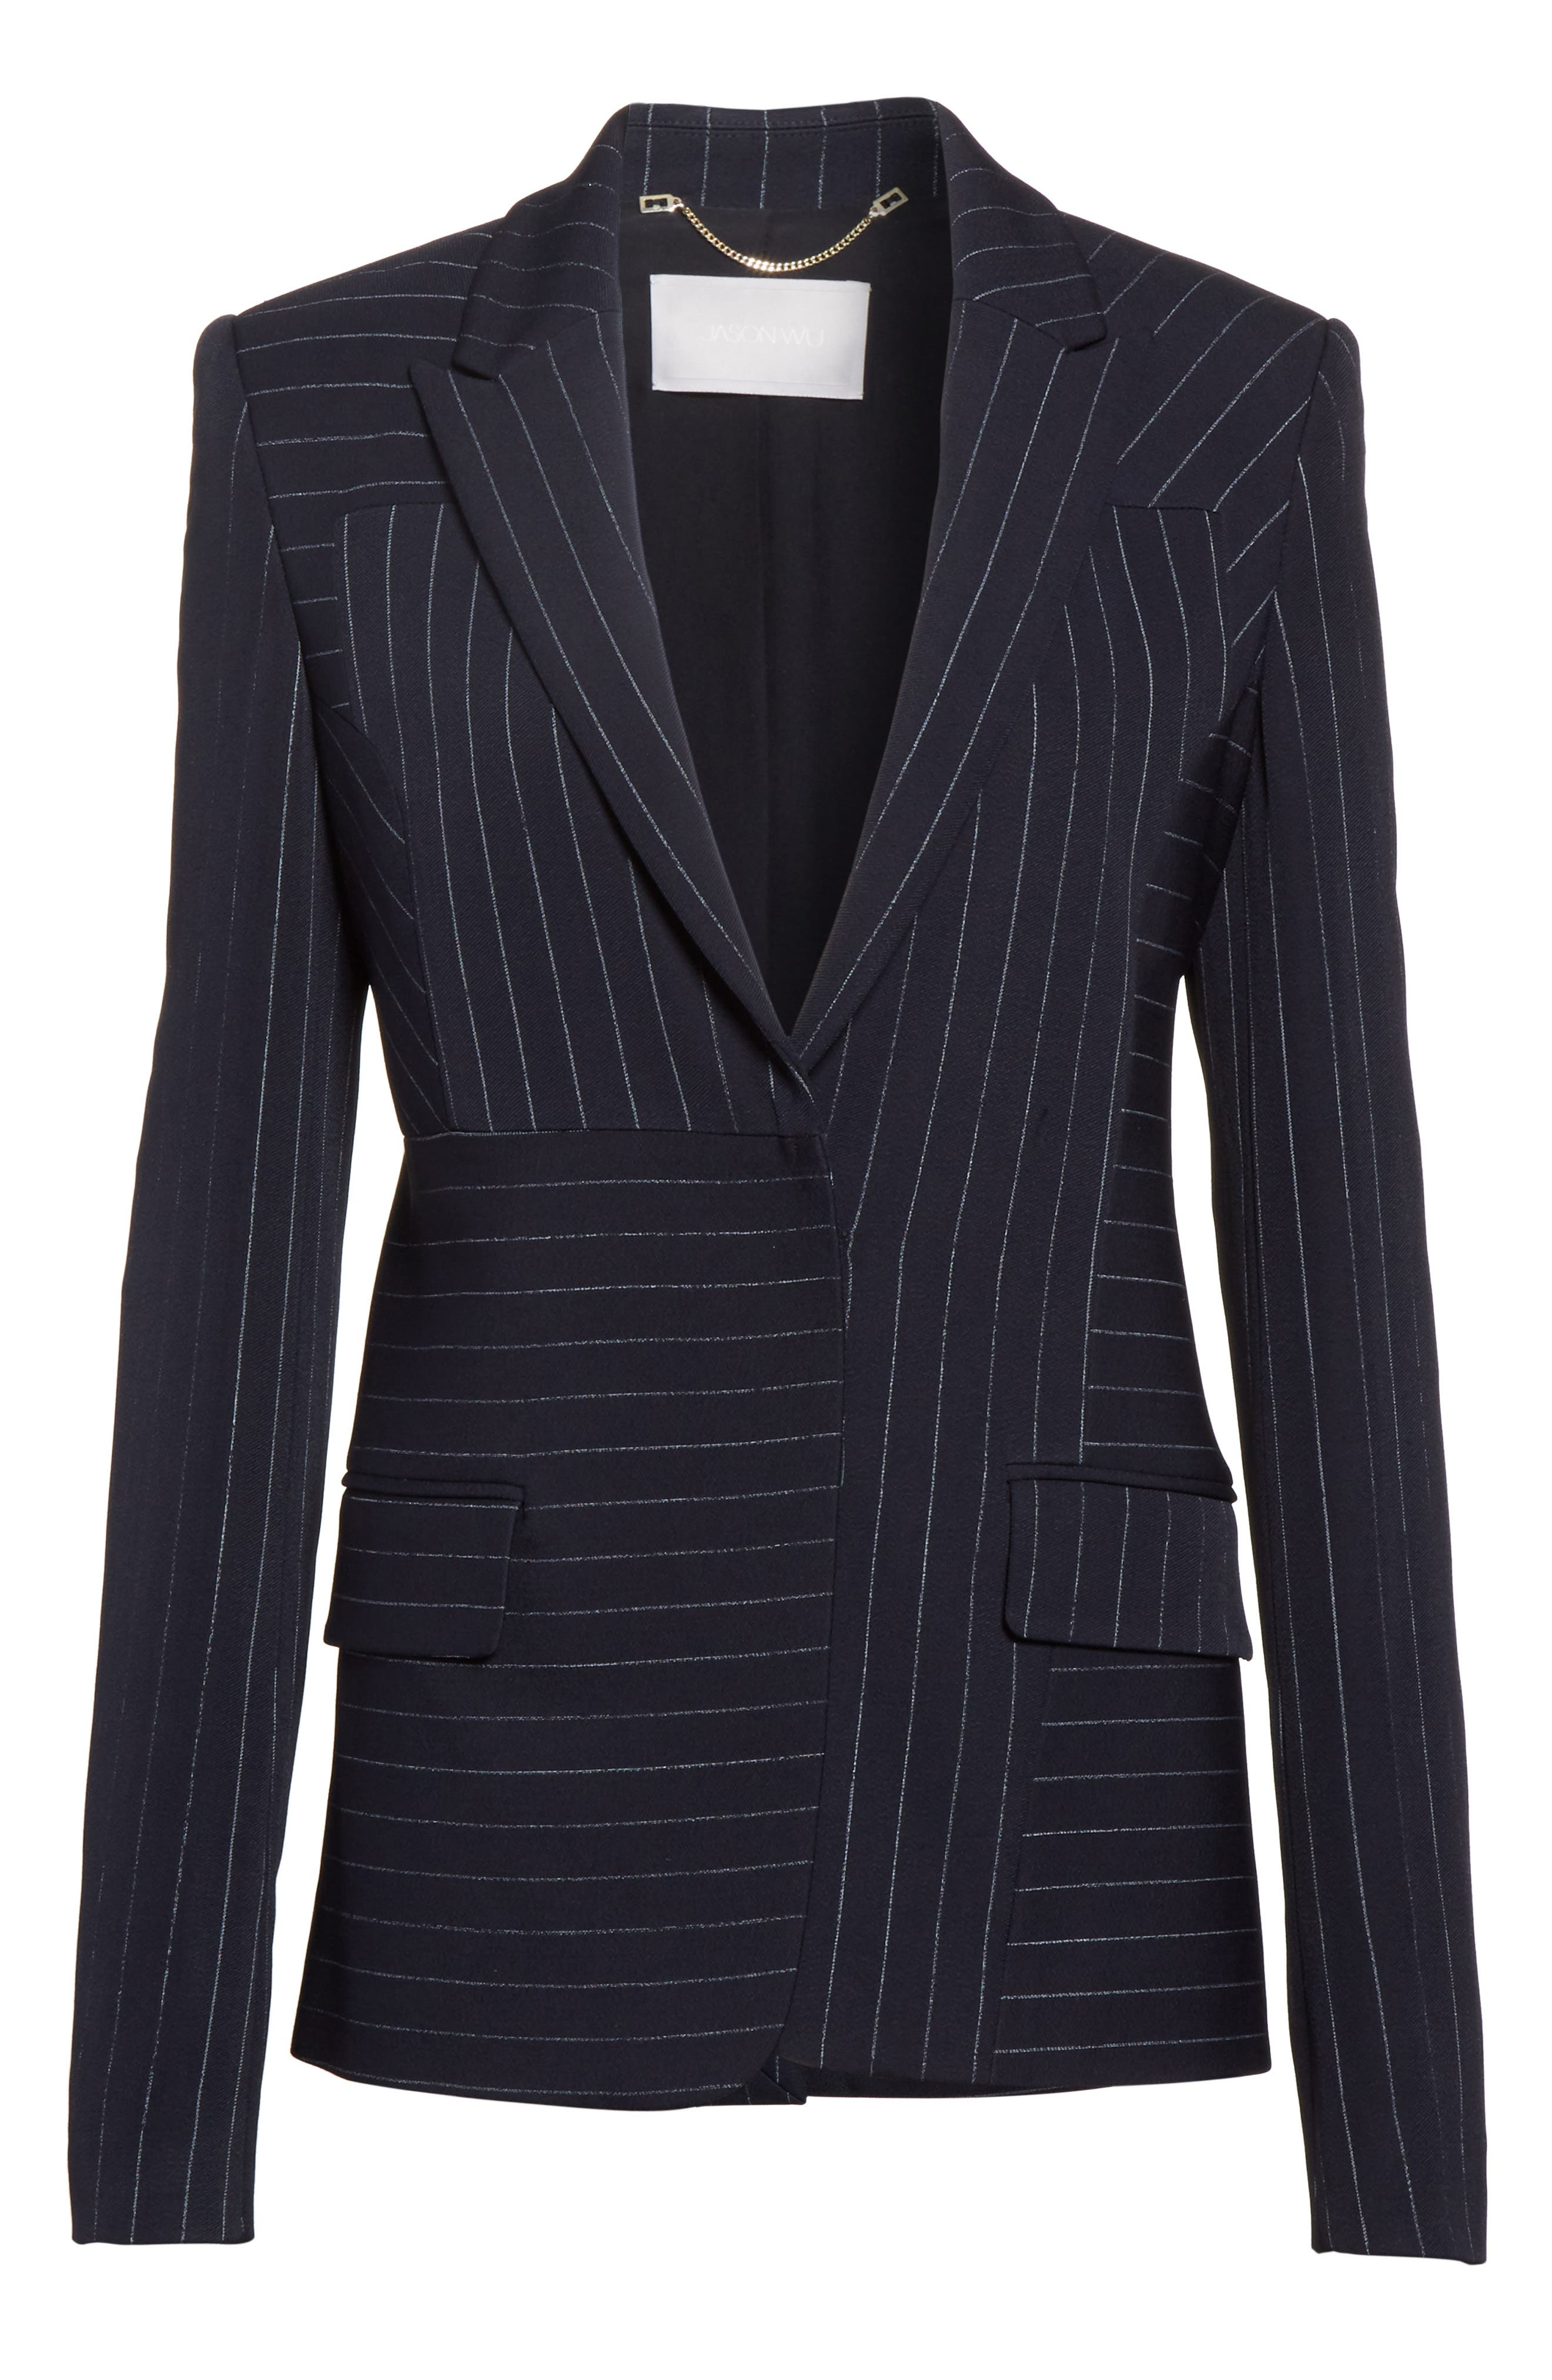 Pinstripe Stretch Jacket,                             Alternate thumbnail 5, color,                             001